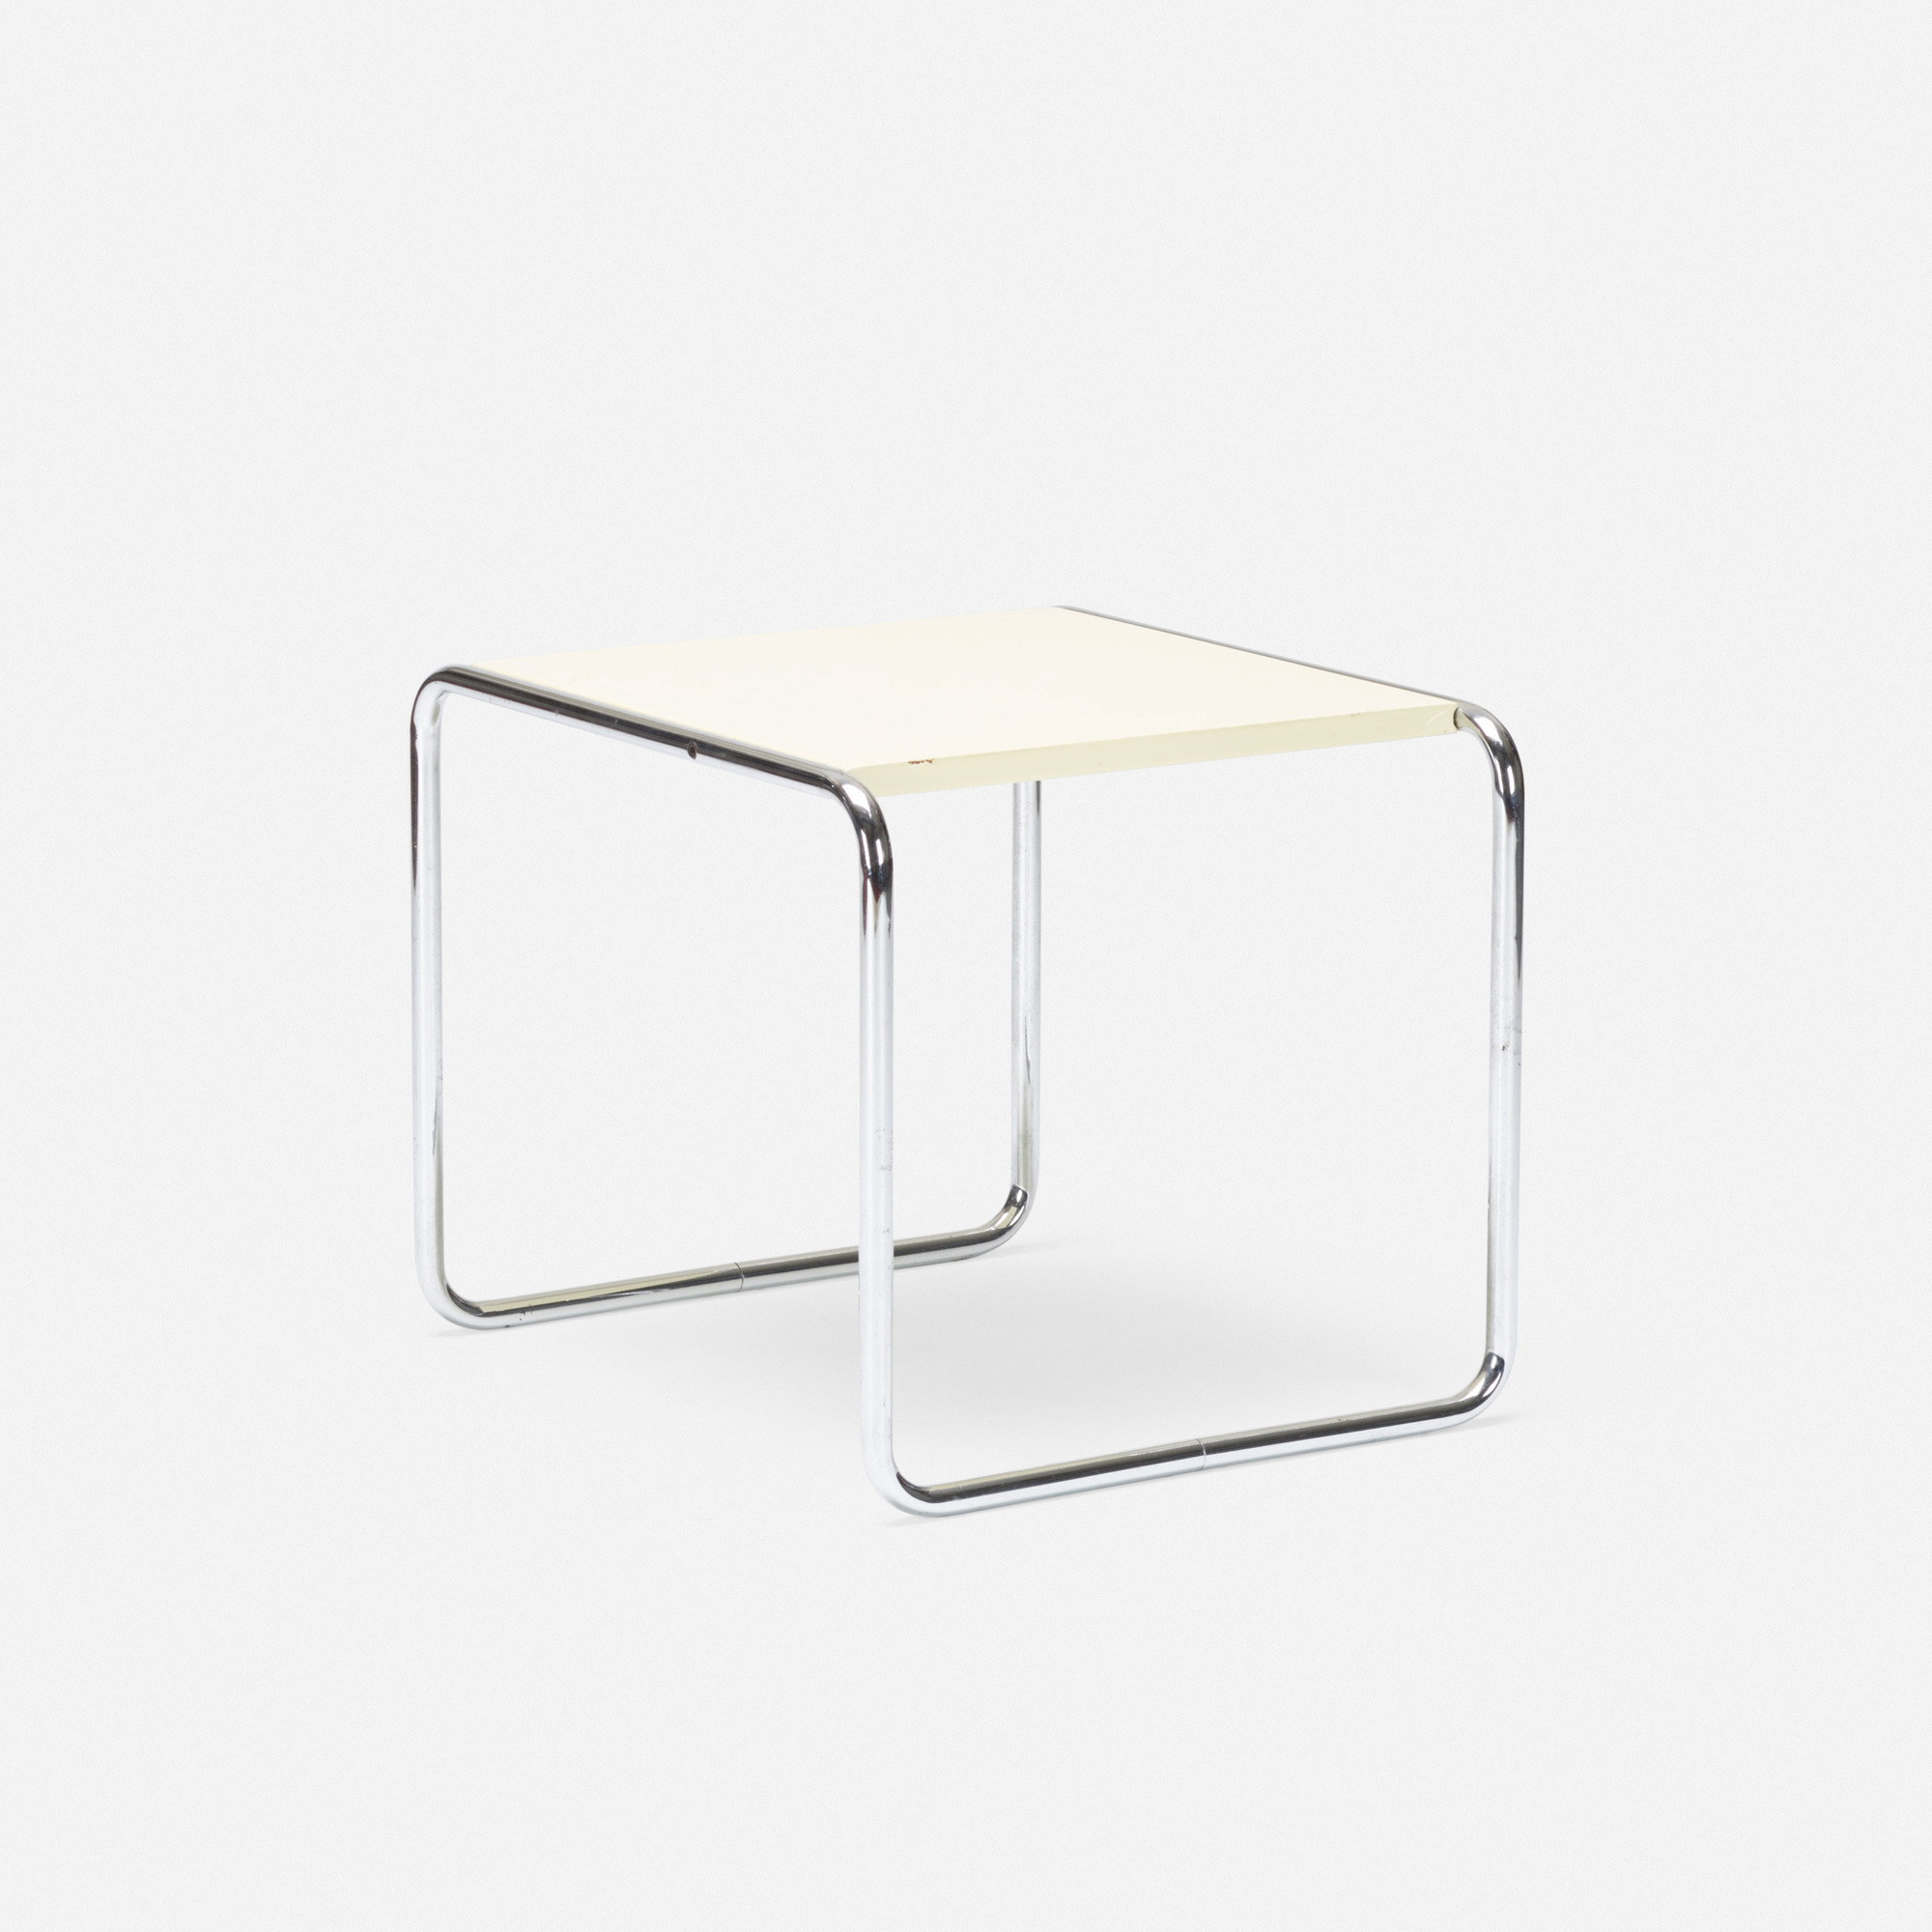 185: Marcel Breuer / occasional table, model B9 (1 of 2)